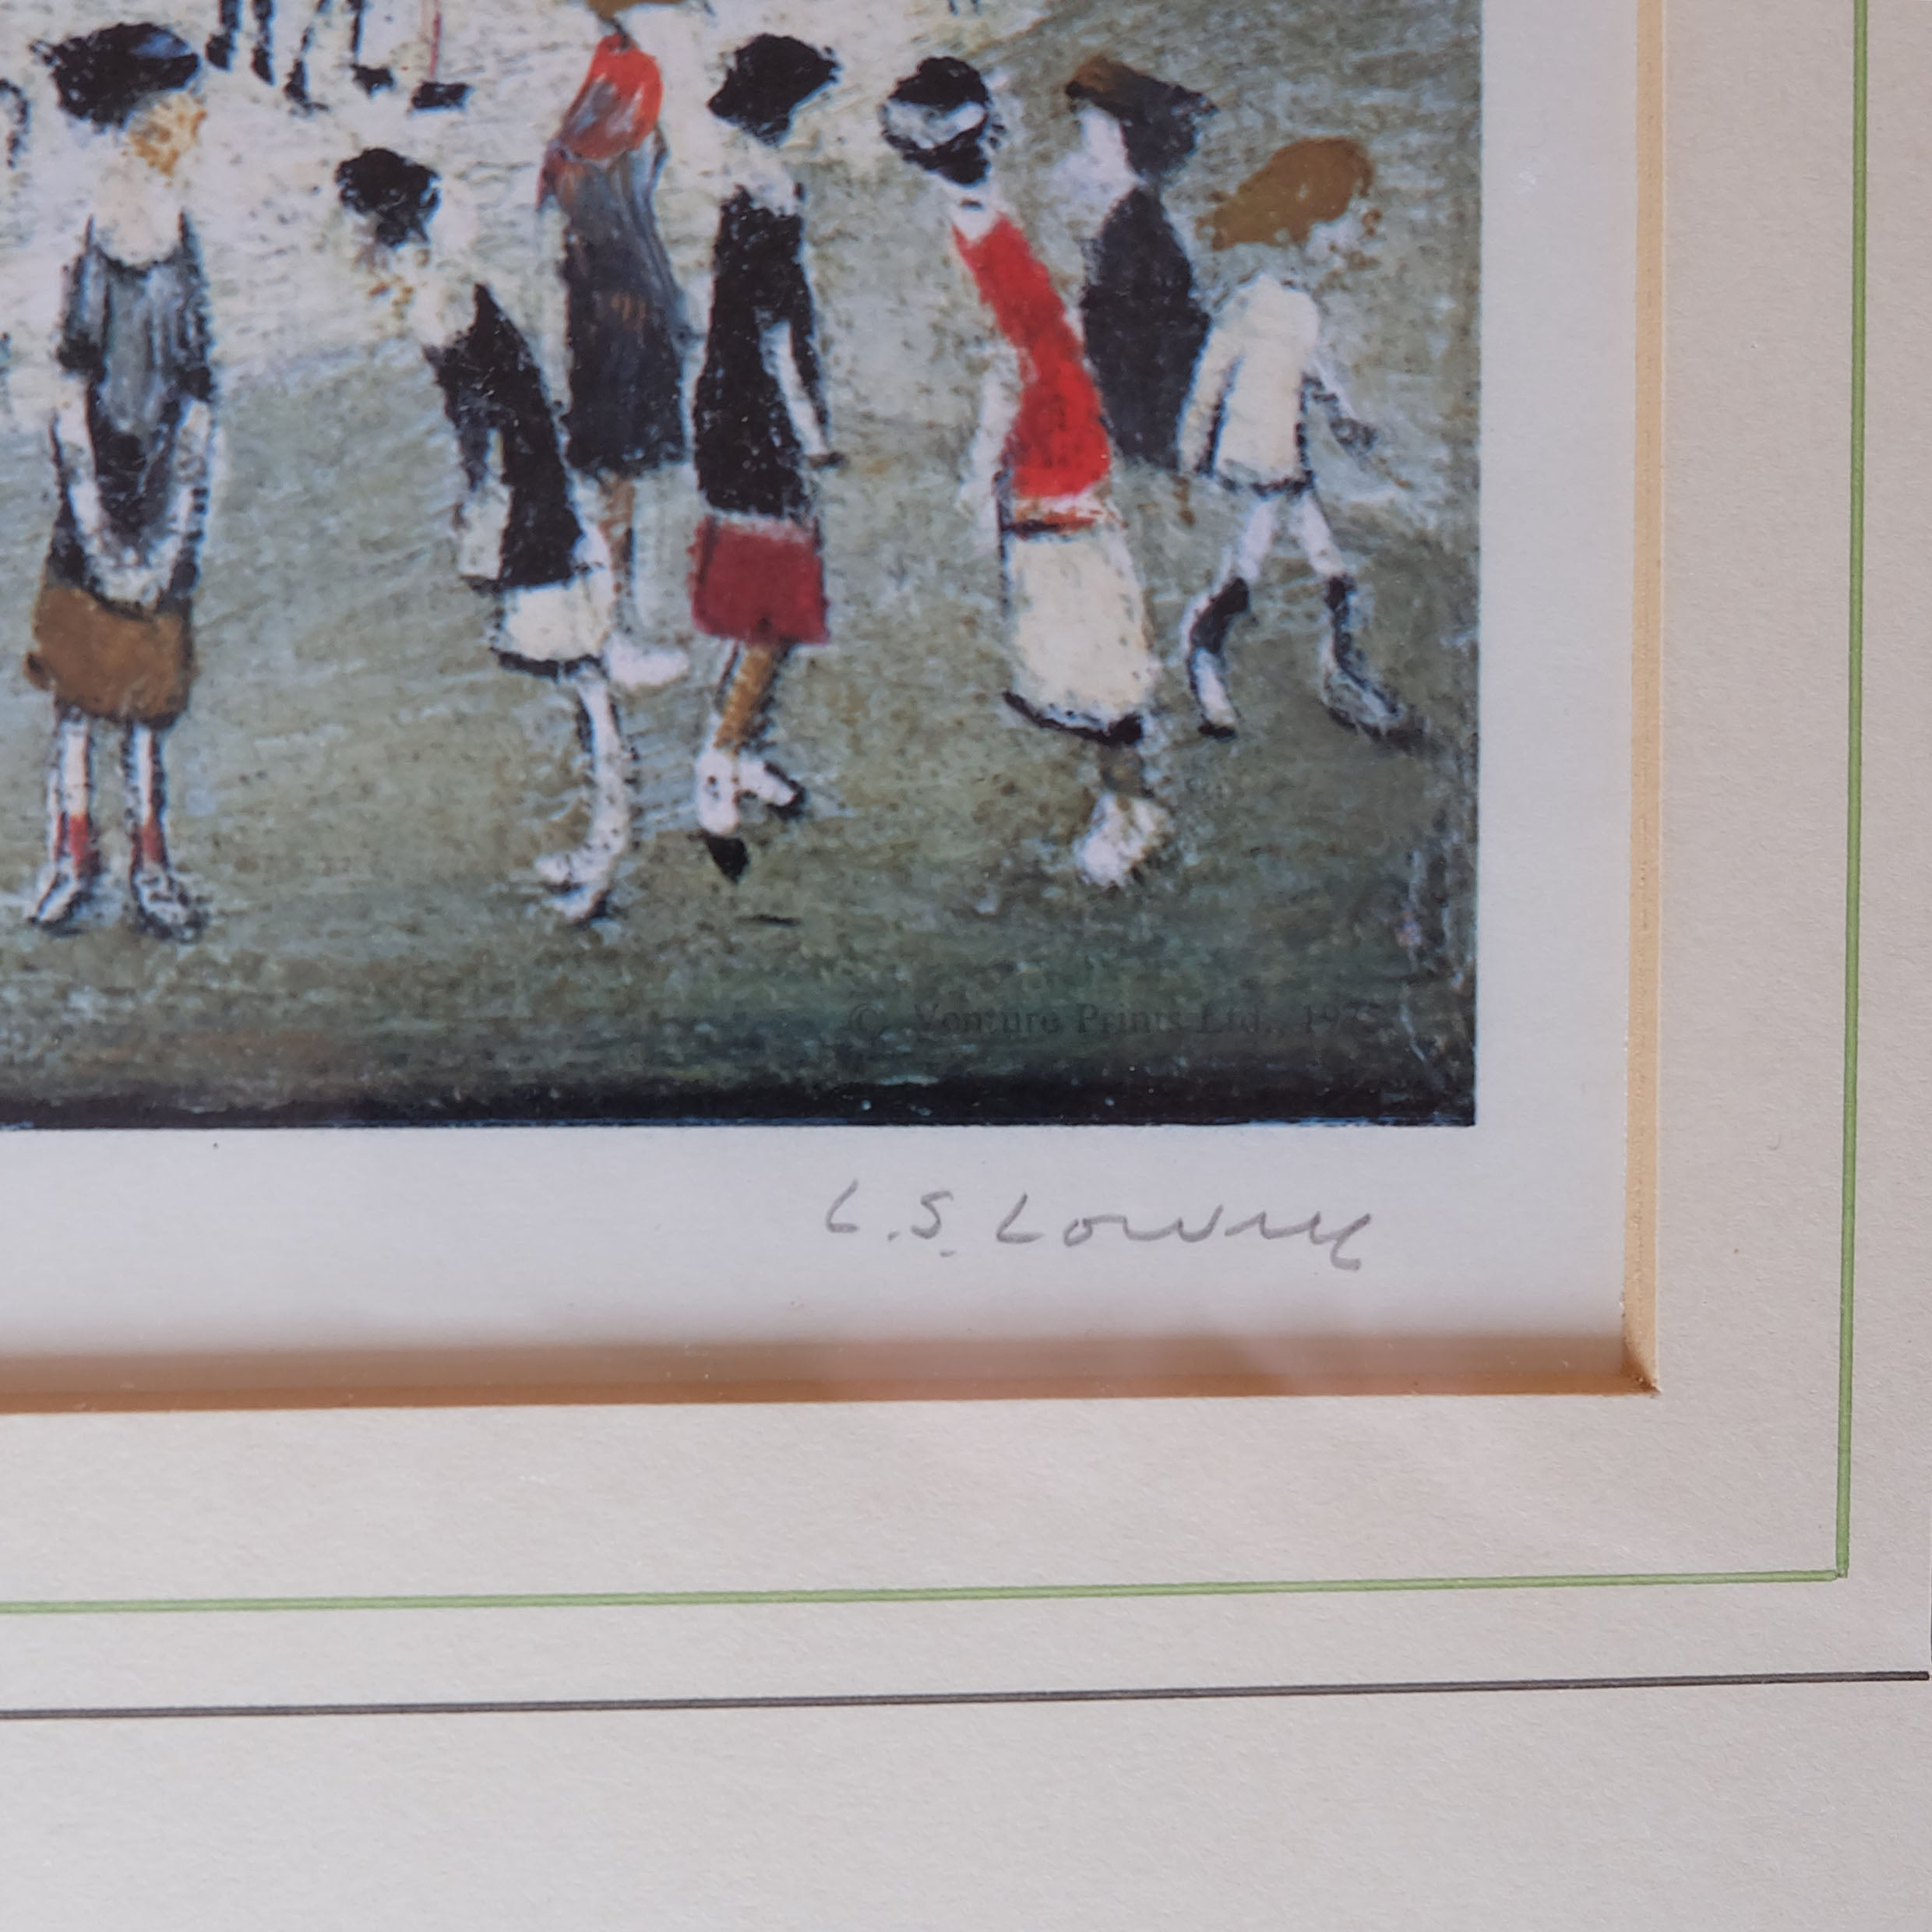 L.S Lowry Signed Art Print Bristol, England - Joe Scarborough Art